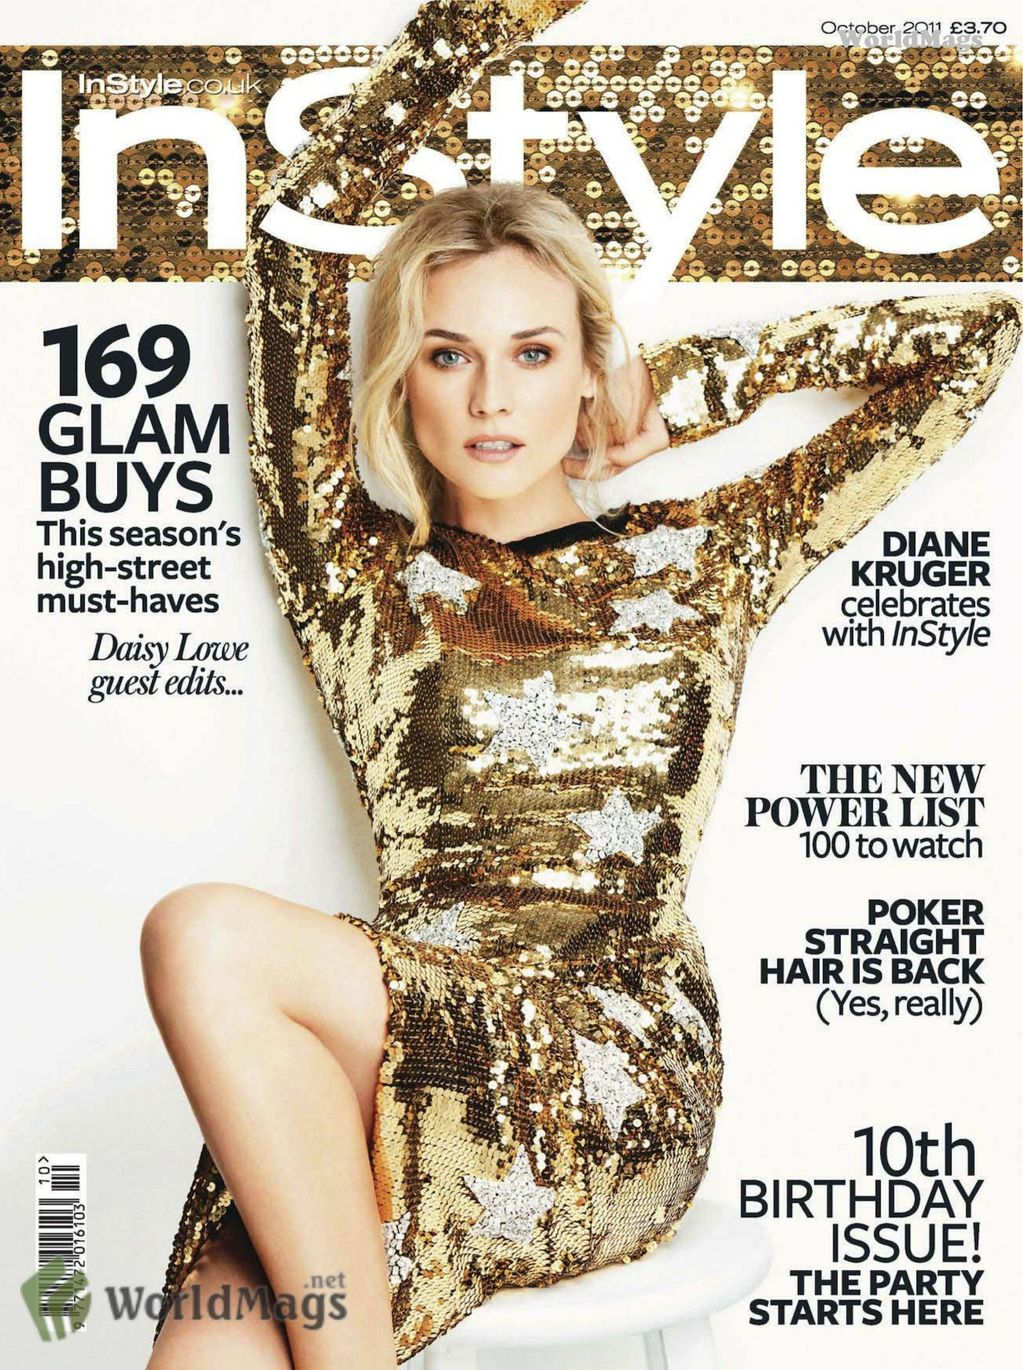 diane kruger for instyle uk october 2011 art8amby 39 s blog. Black Bedroom Furniture Sets. Home Design Ideas